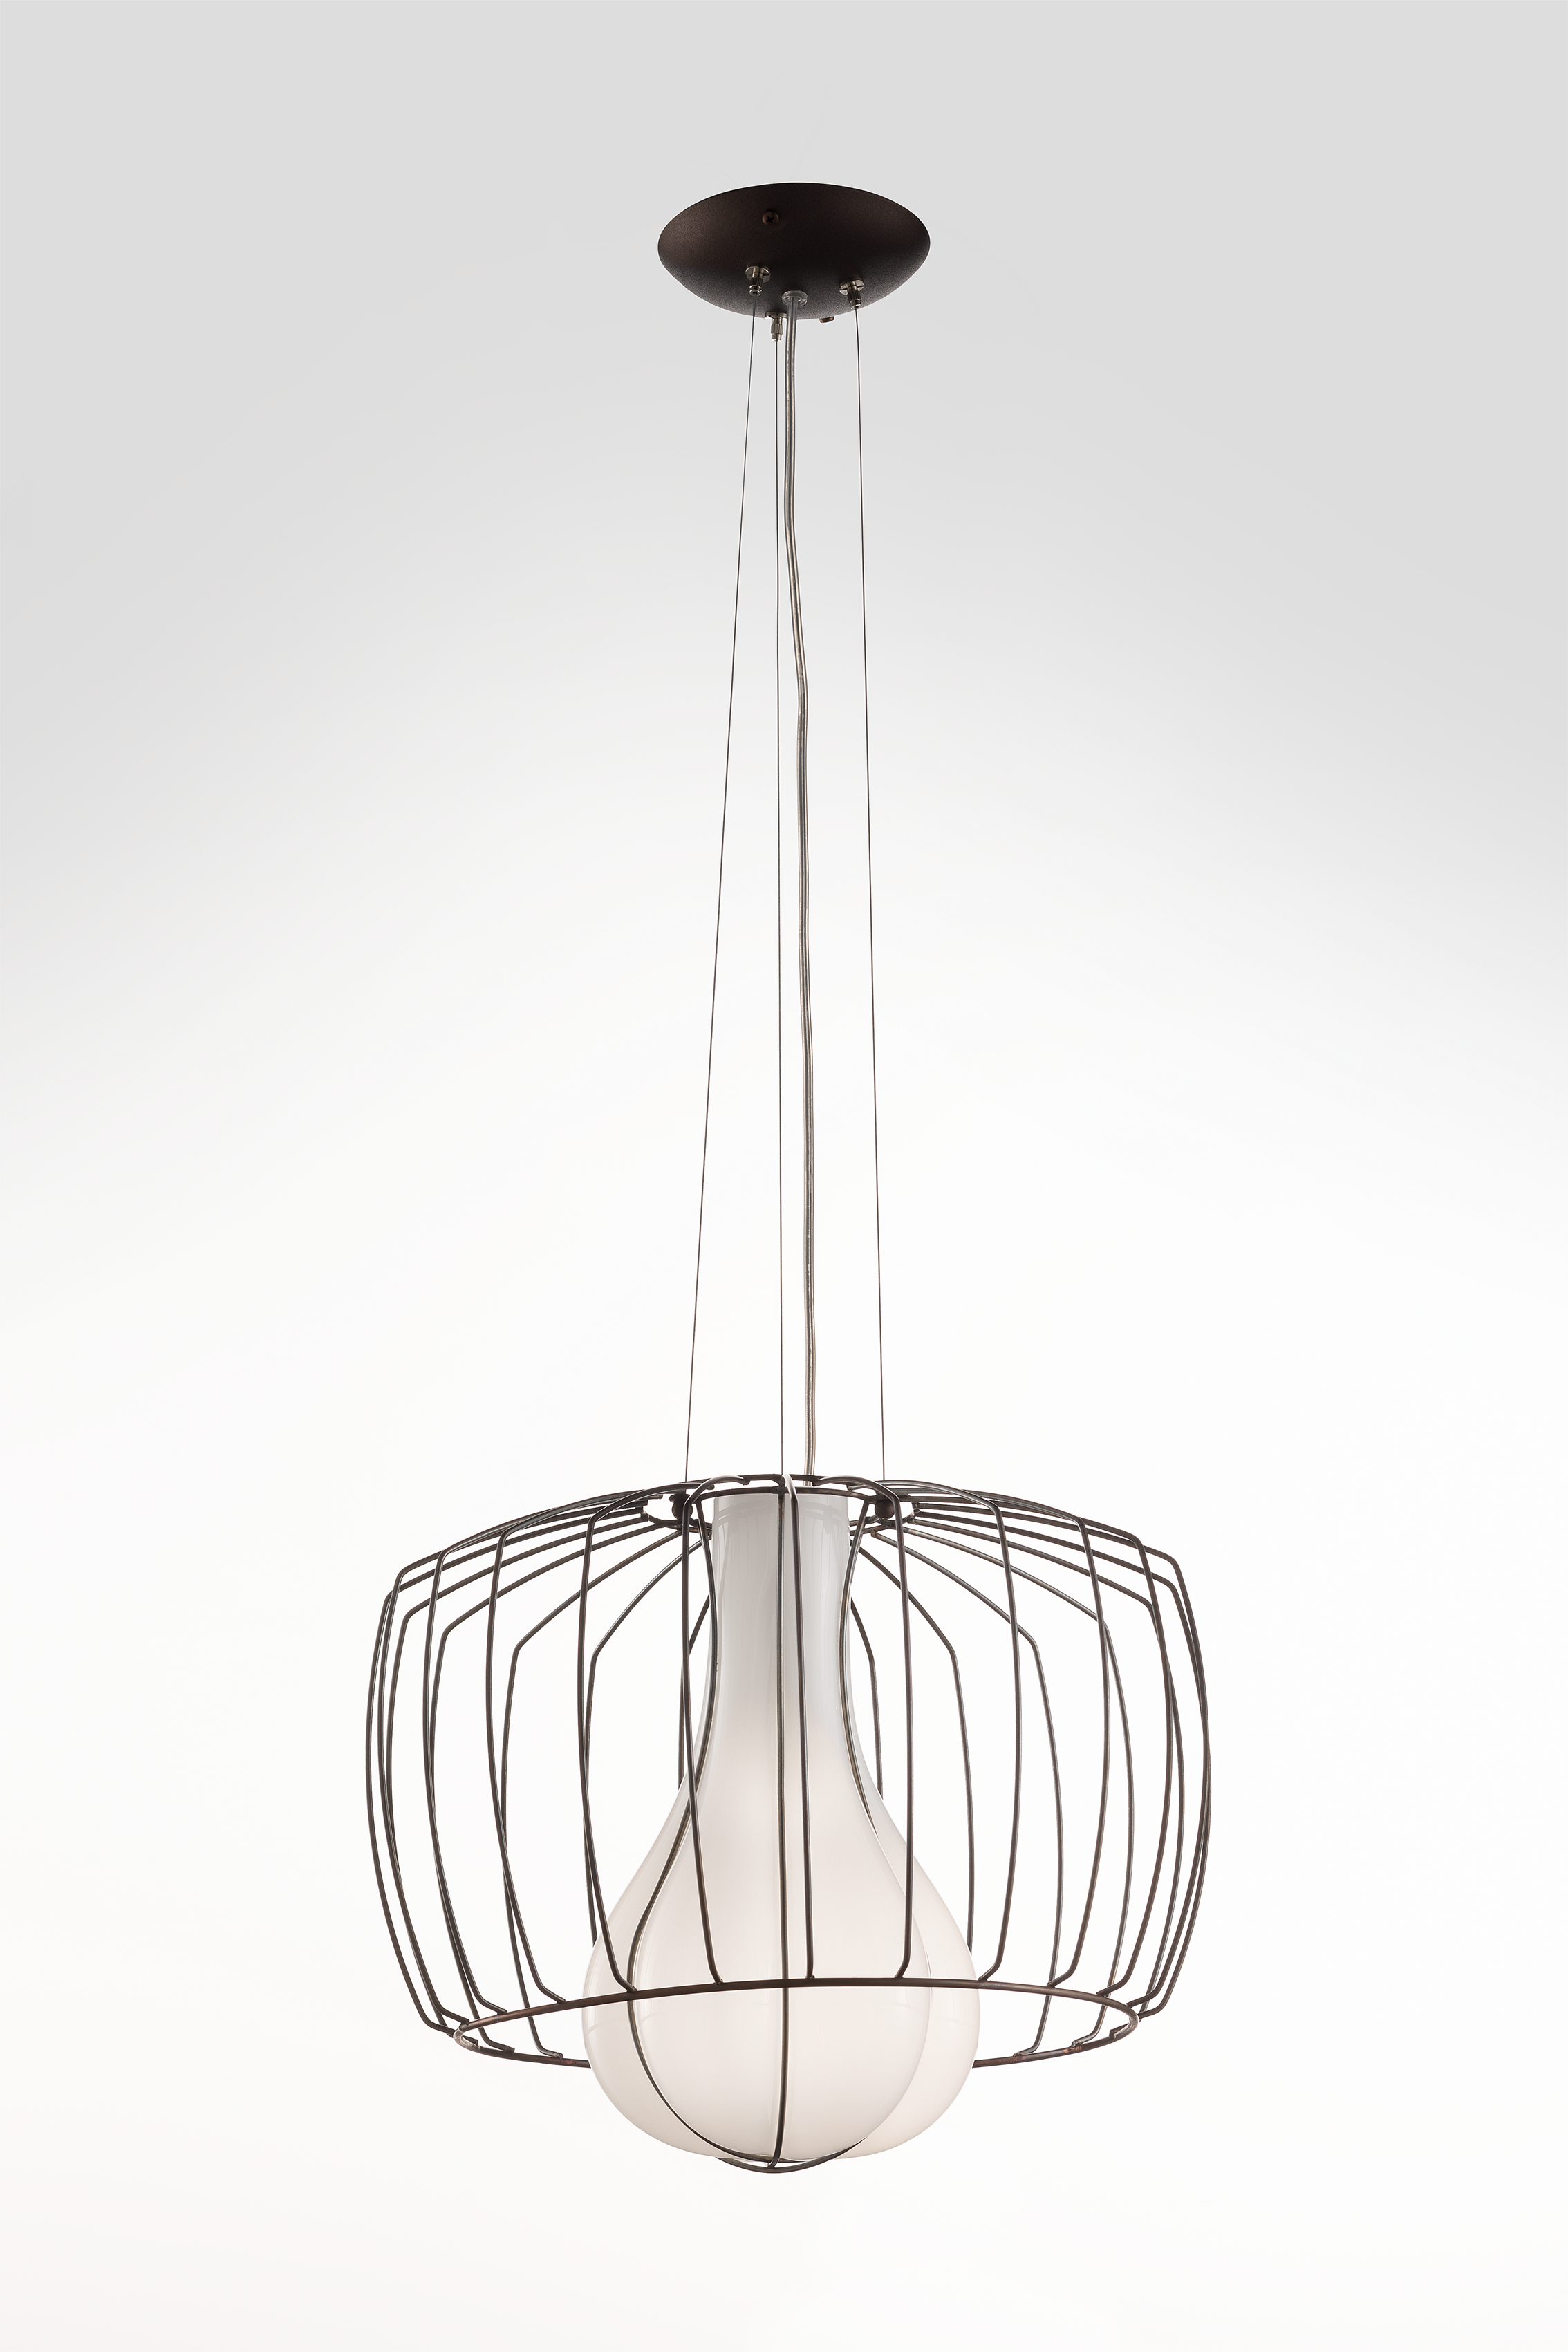 A whole  ru ure, only partly blown, allows the prote ion of the caged glass which  ands out in the middle of the pendant light.